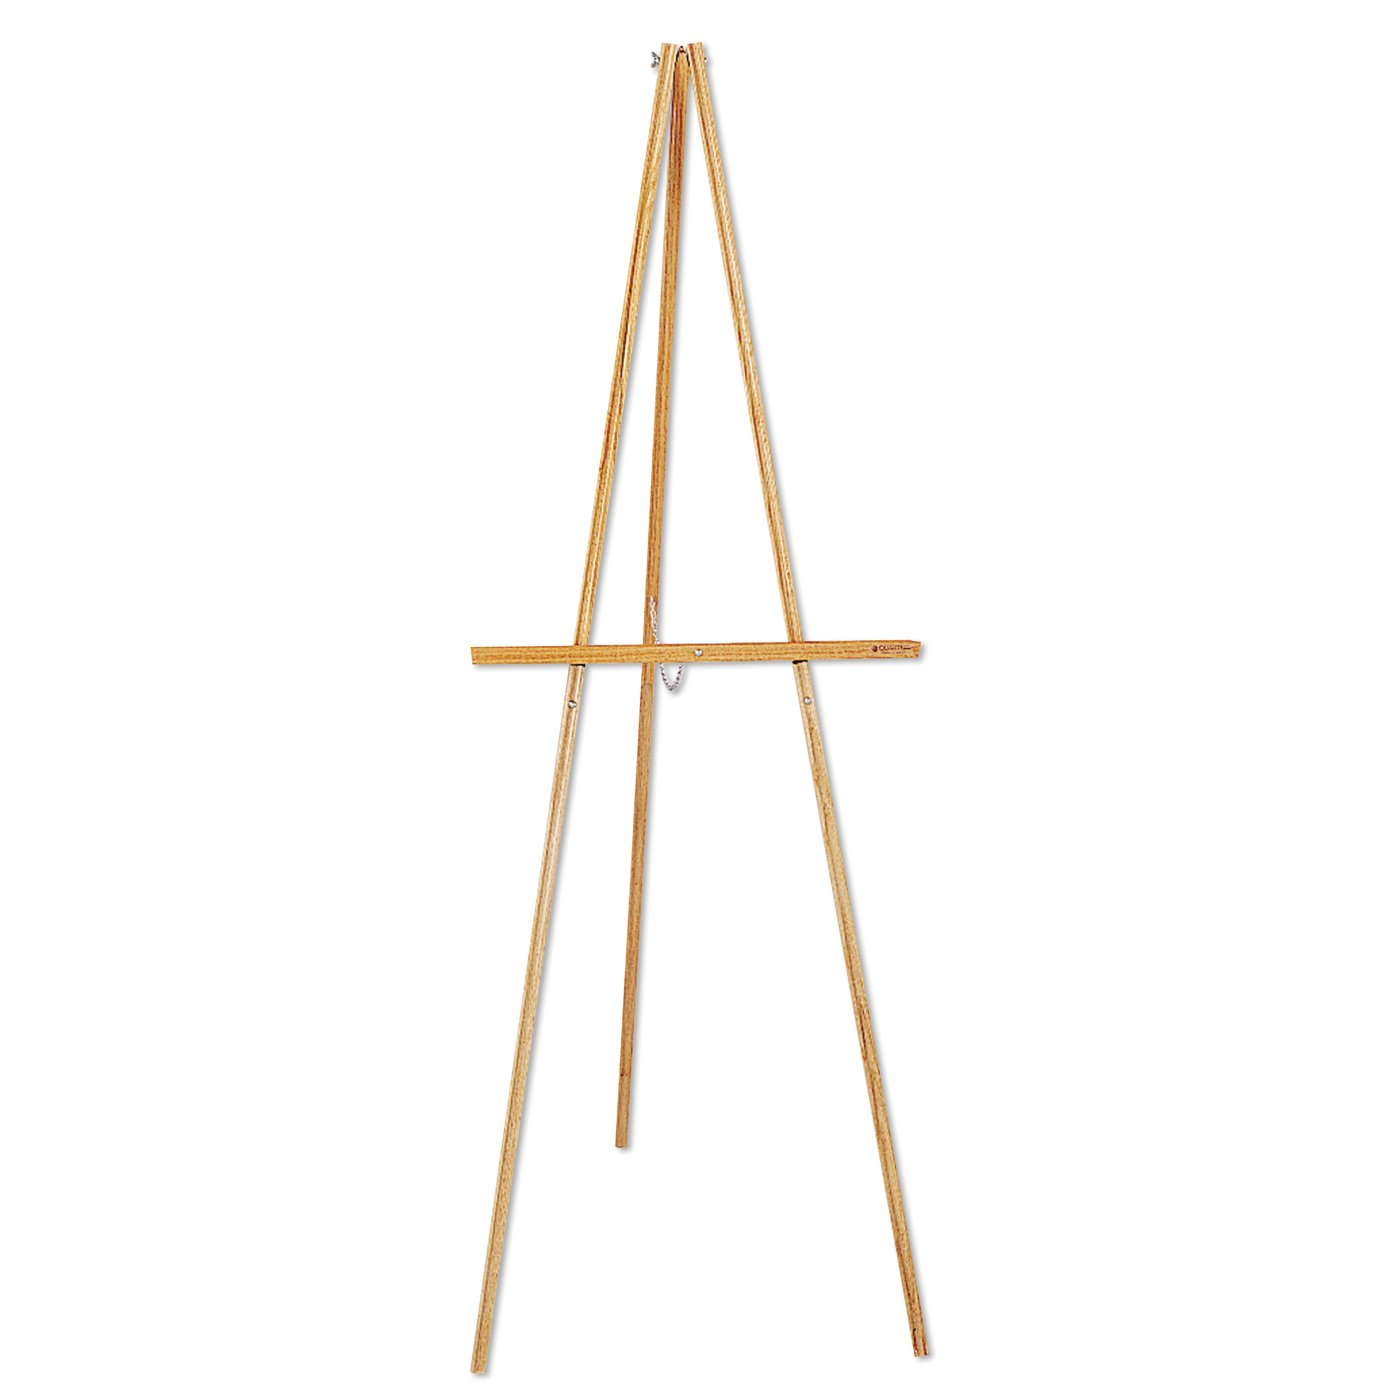 quartet easels display easels quartet lightweight wood